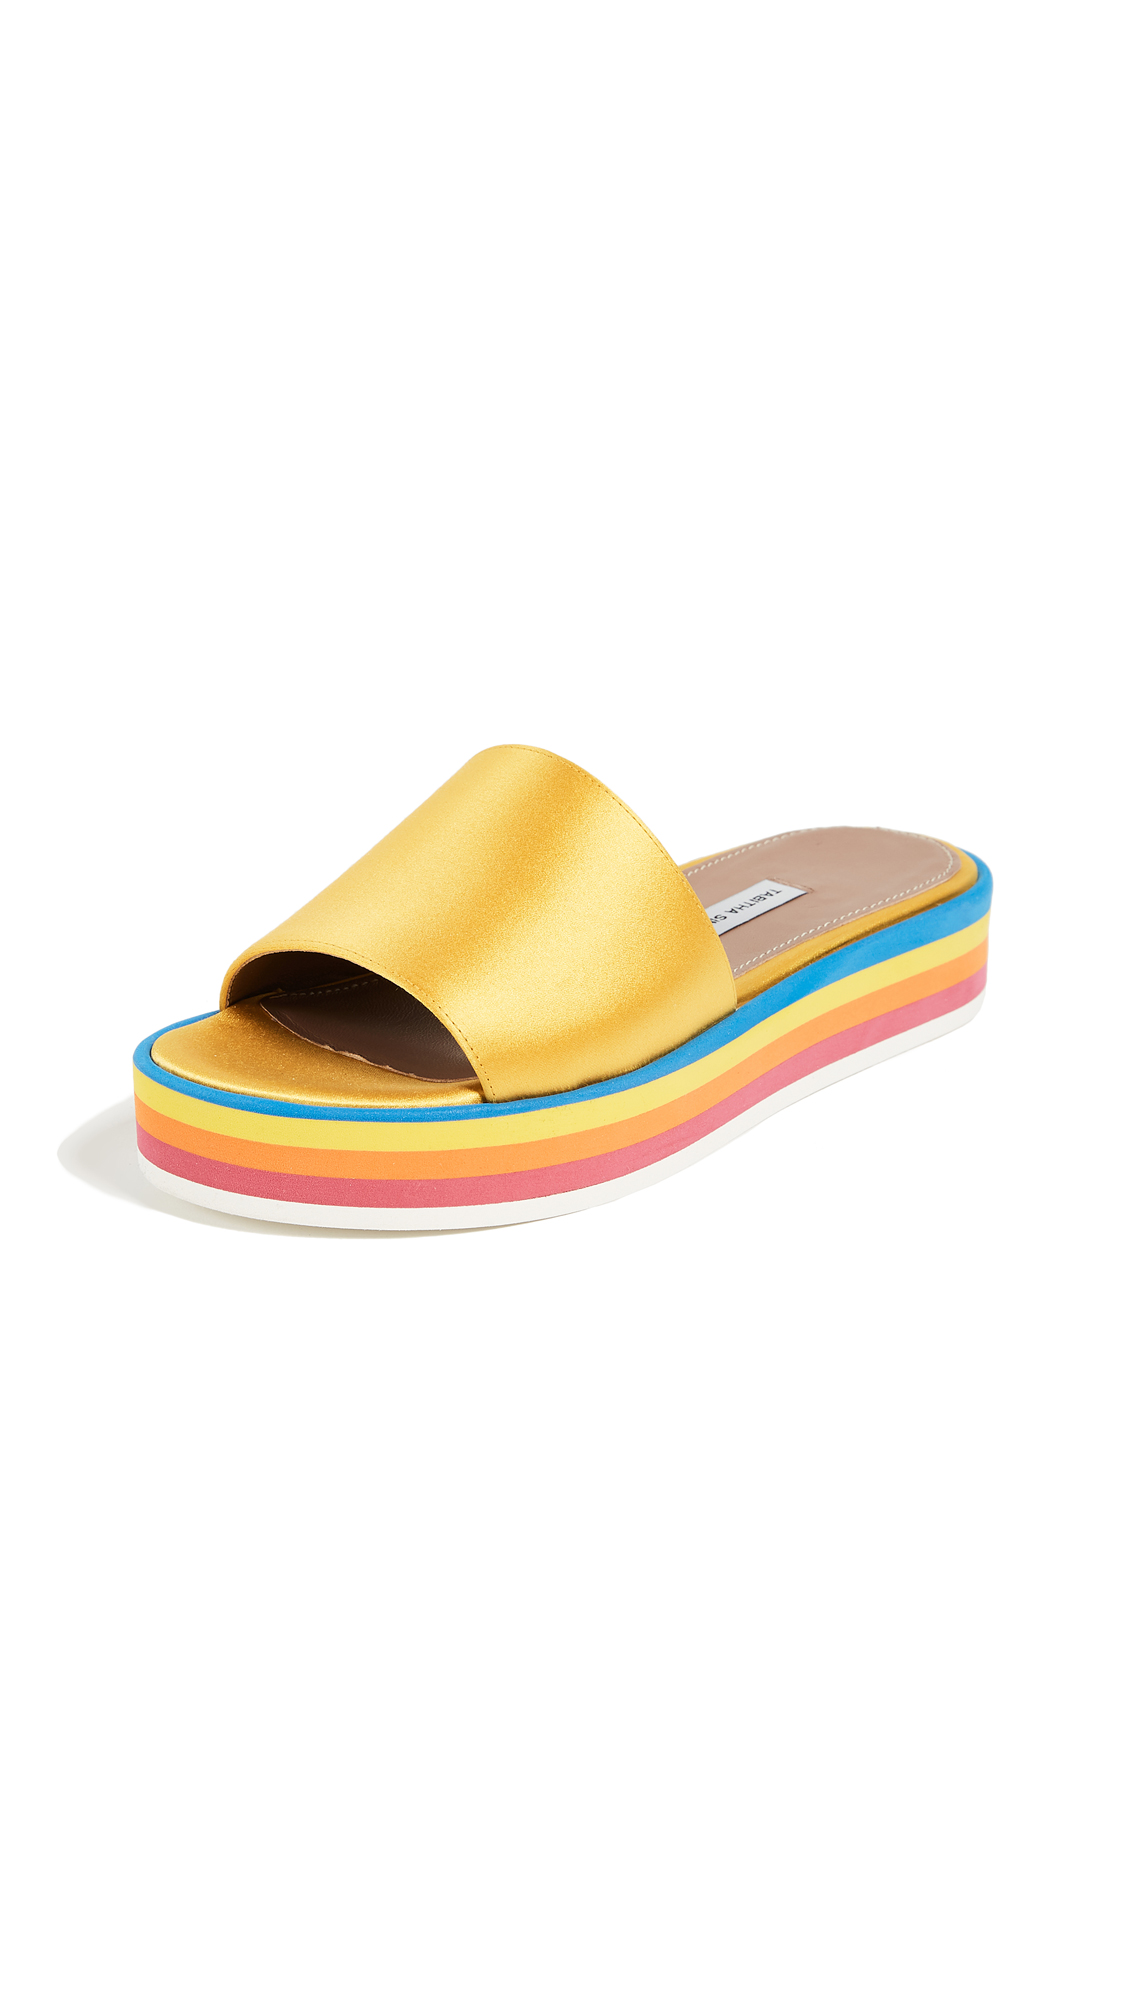 Tabitha Simmons Sophia Platform Slides - Yellow/Multi